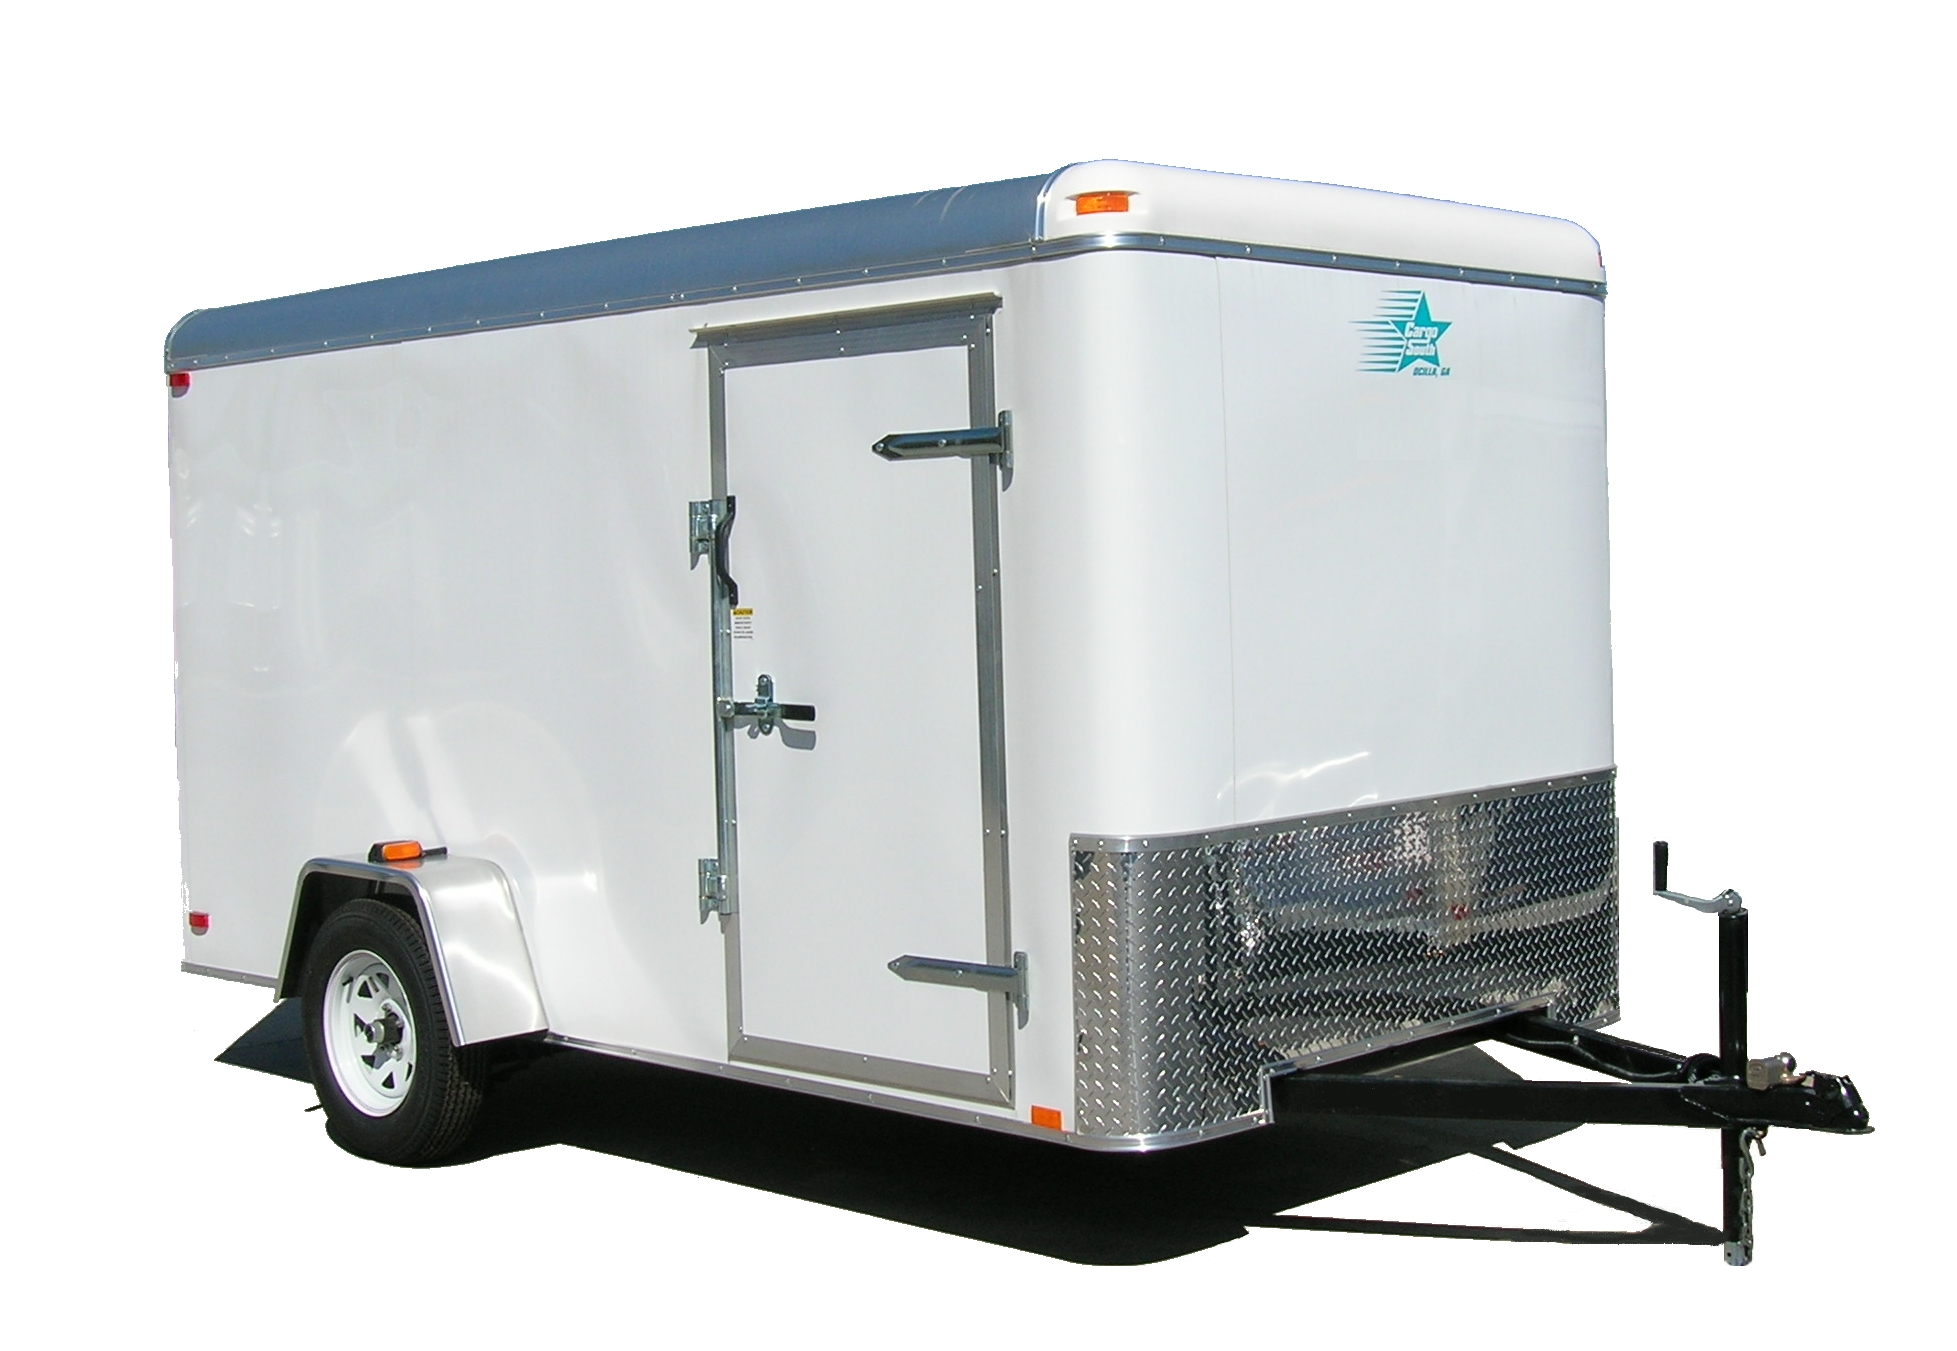 Lastest  Types Of Awnings Available For The Various Types Of Trailers